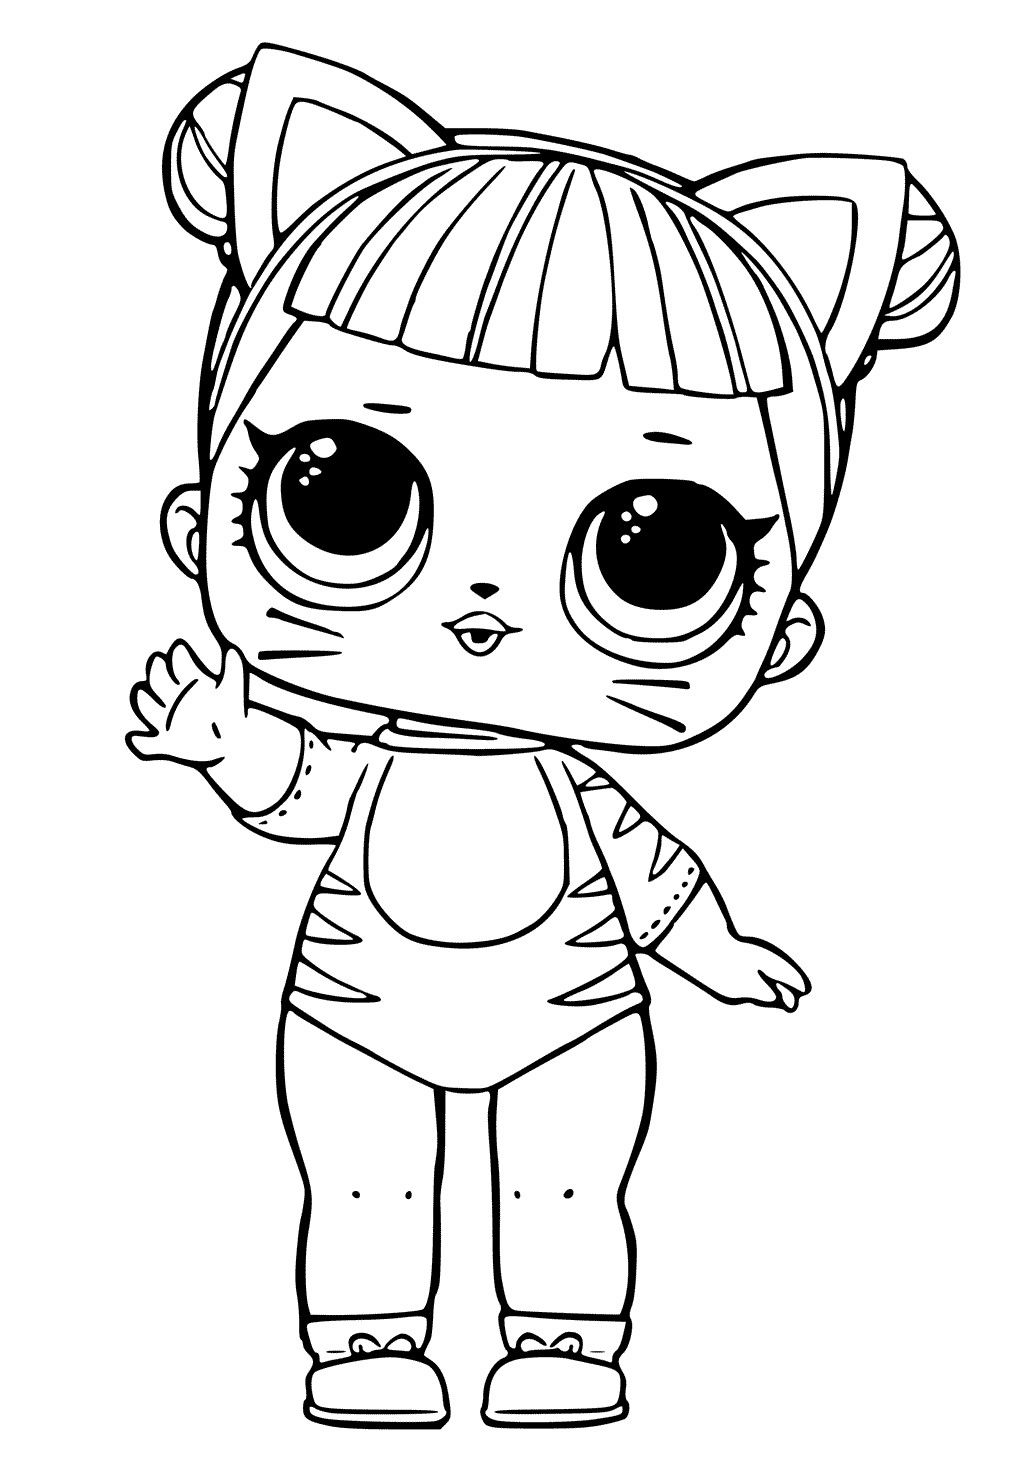 New Coloring Pages Lol Cat coloring page, Baby coloring